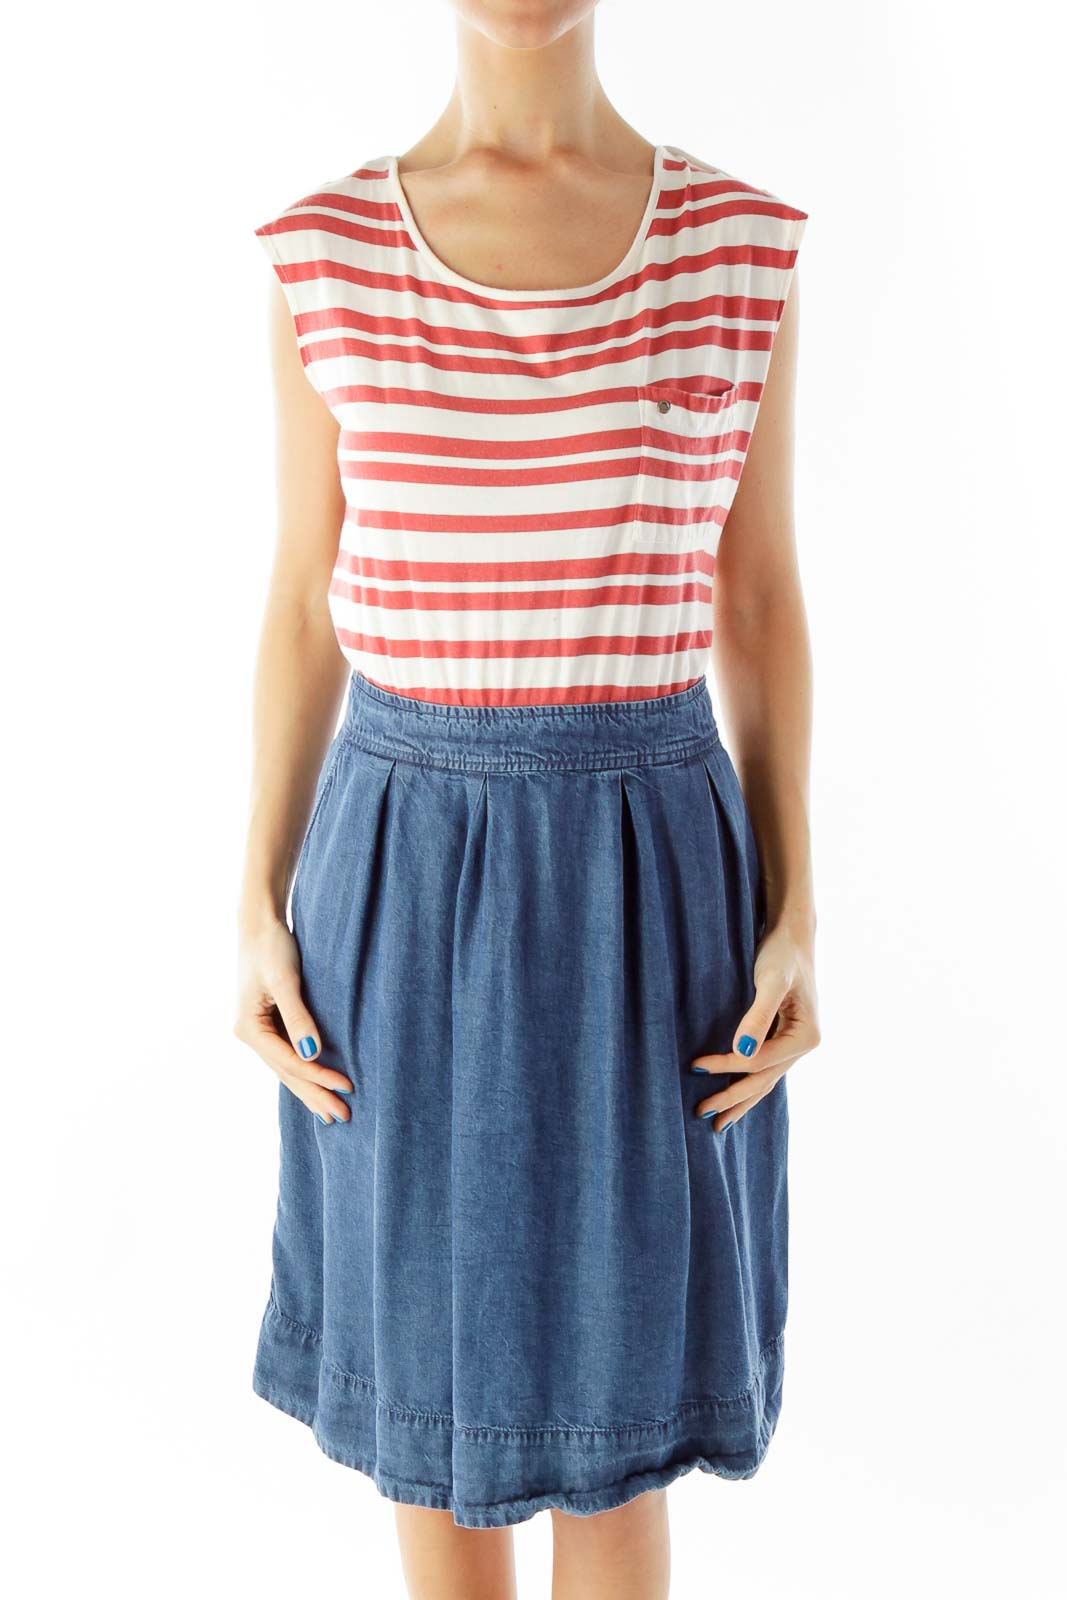 Red White Blue Striped Dress Front